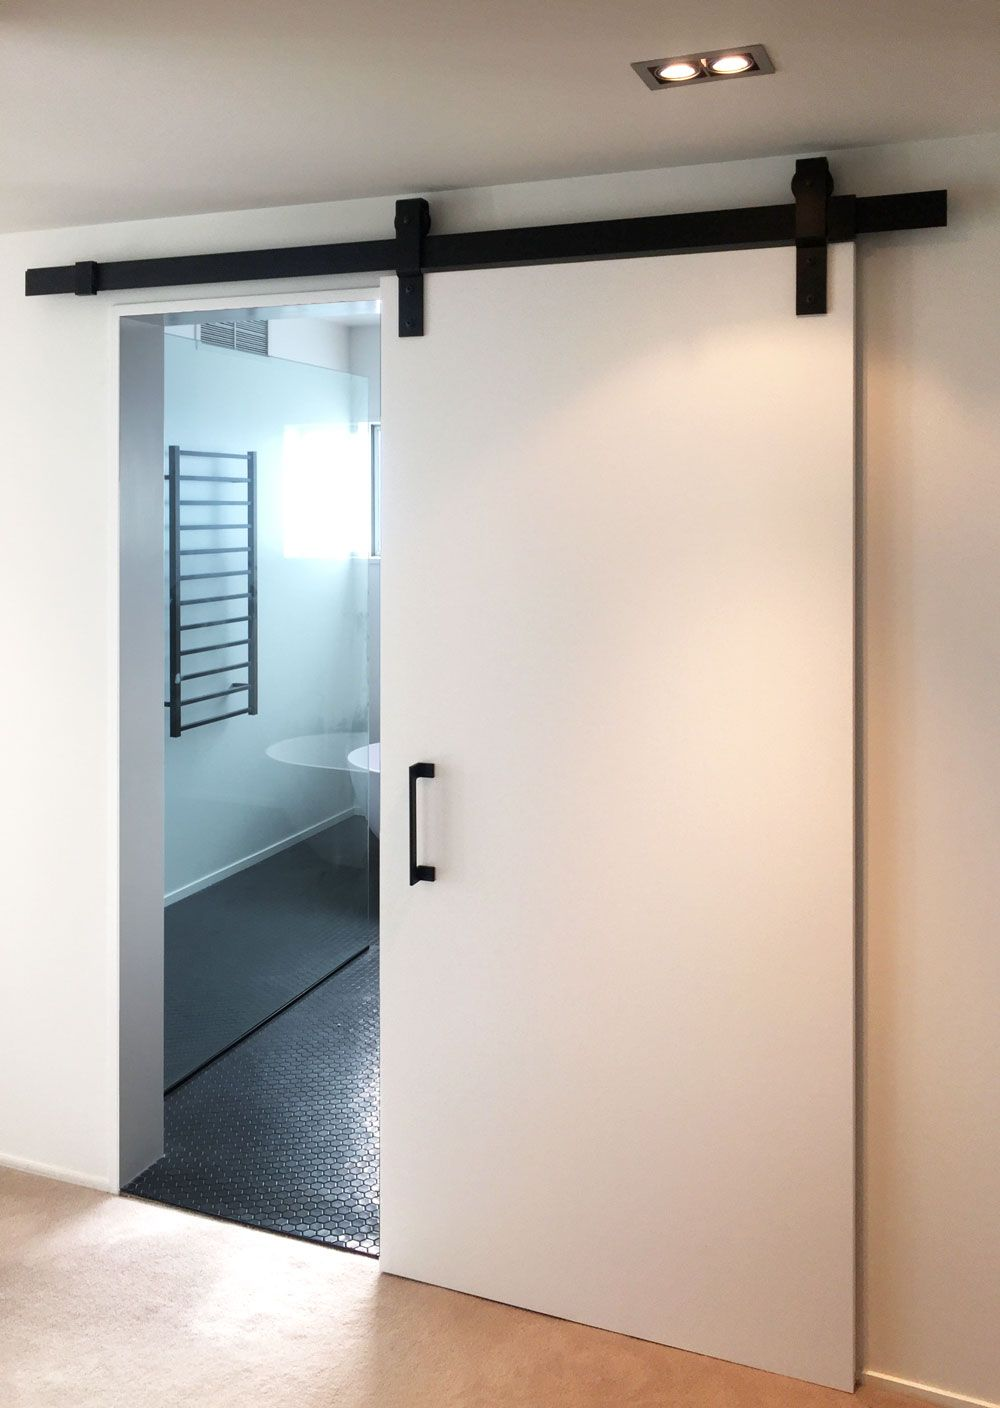 Cavity Sliders Black Anodized Barn Door Track With White Door This Barn Door Track Is Equipped With Soft Close Soft Op Barn Door Track Barn Door White Doors